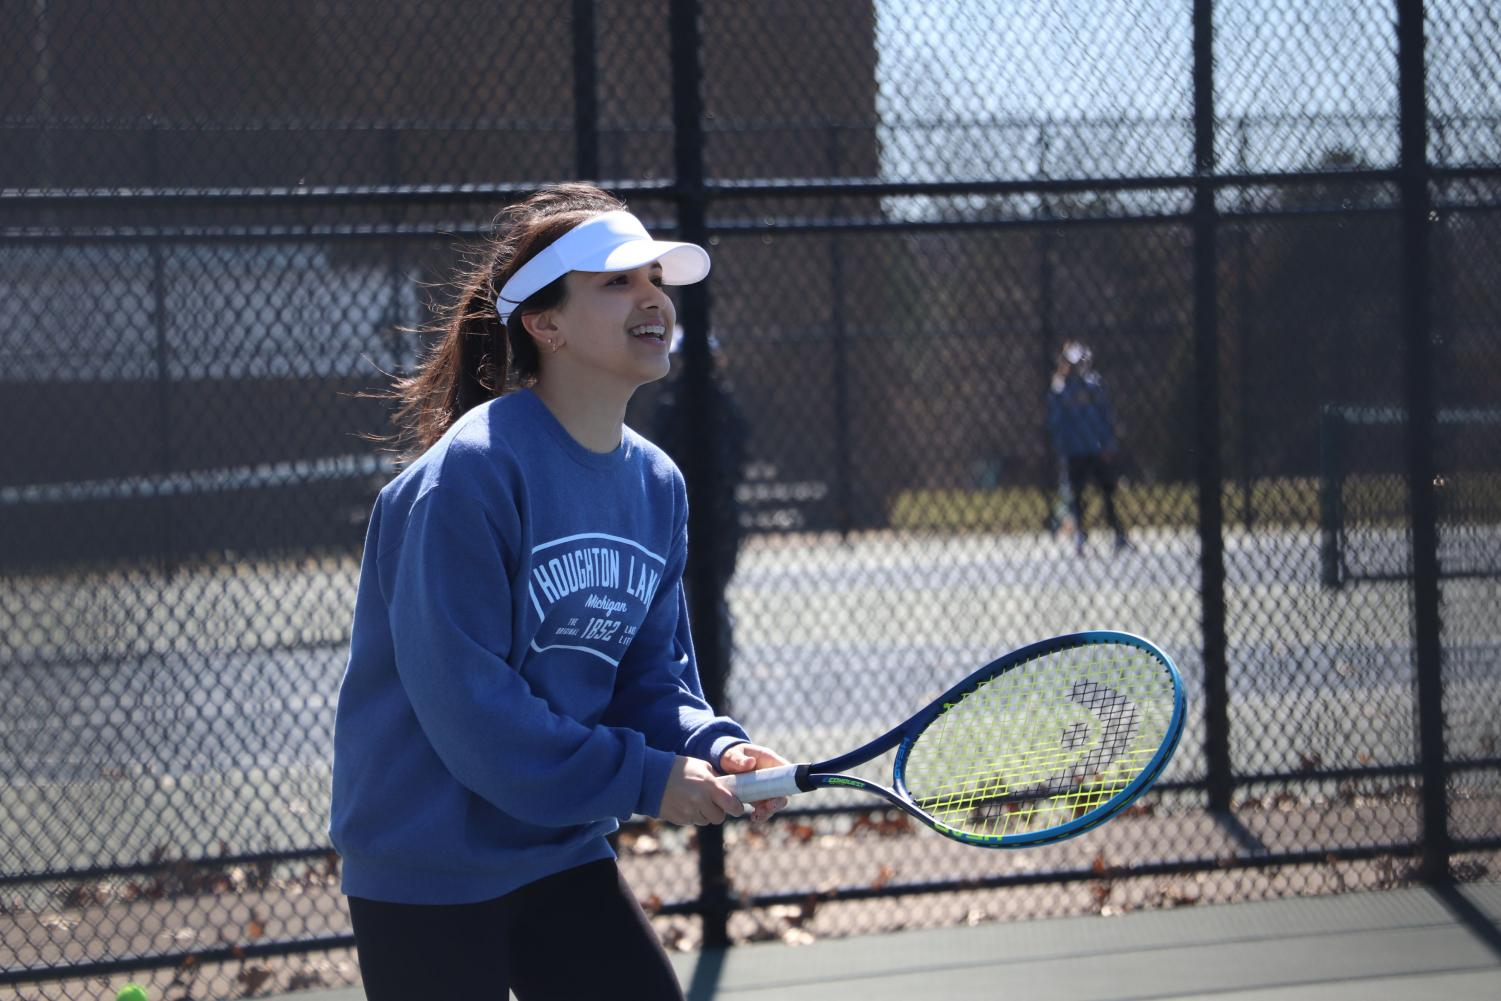 During JV tennis practice, freshman Alyssa Andrews plays